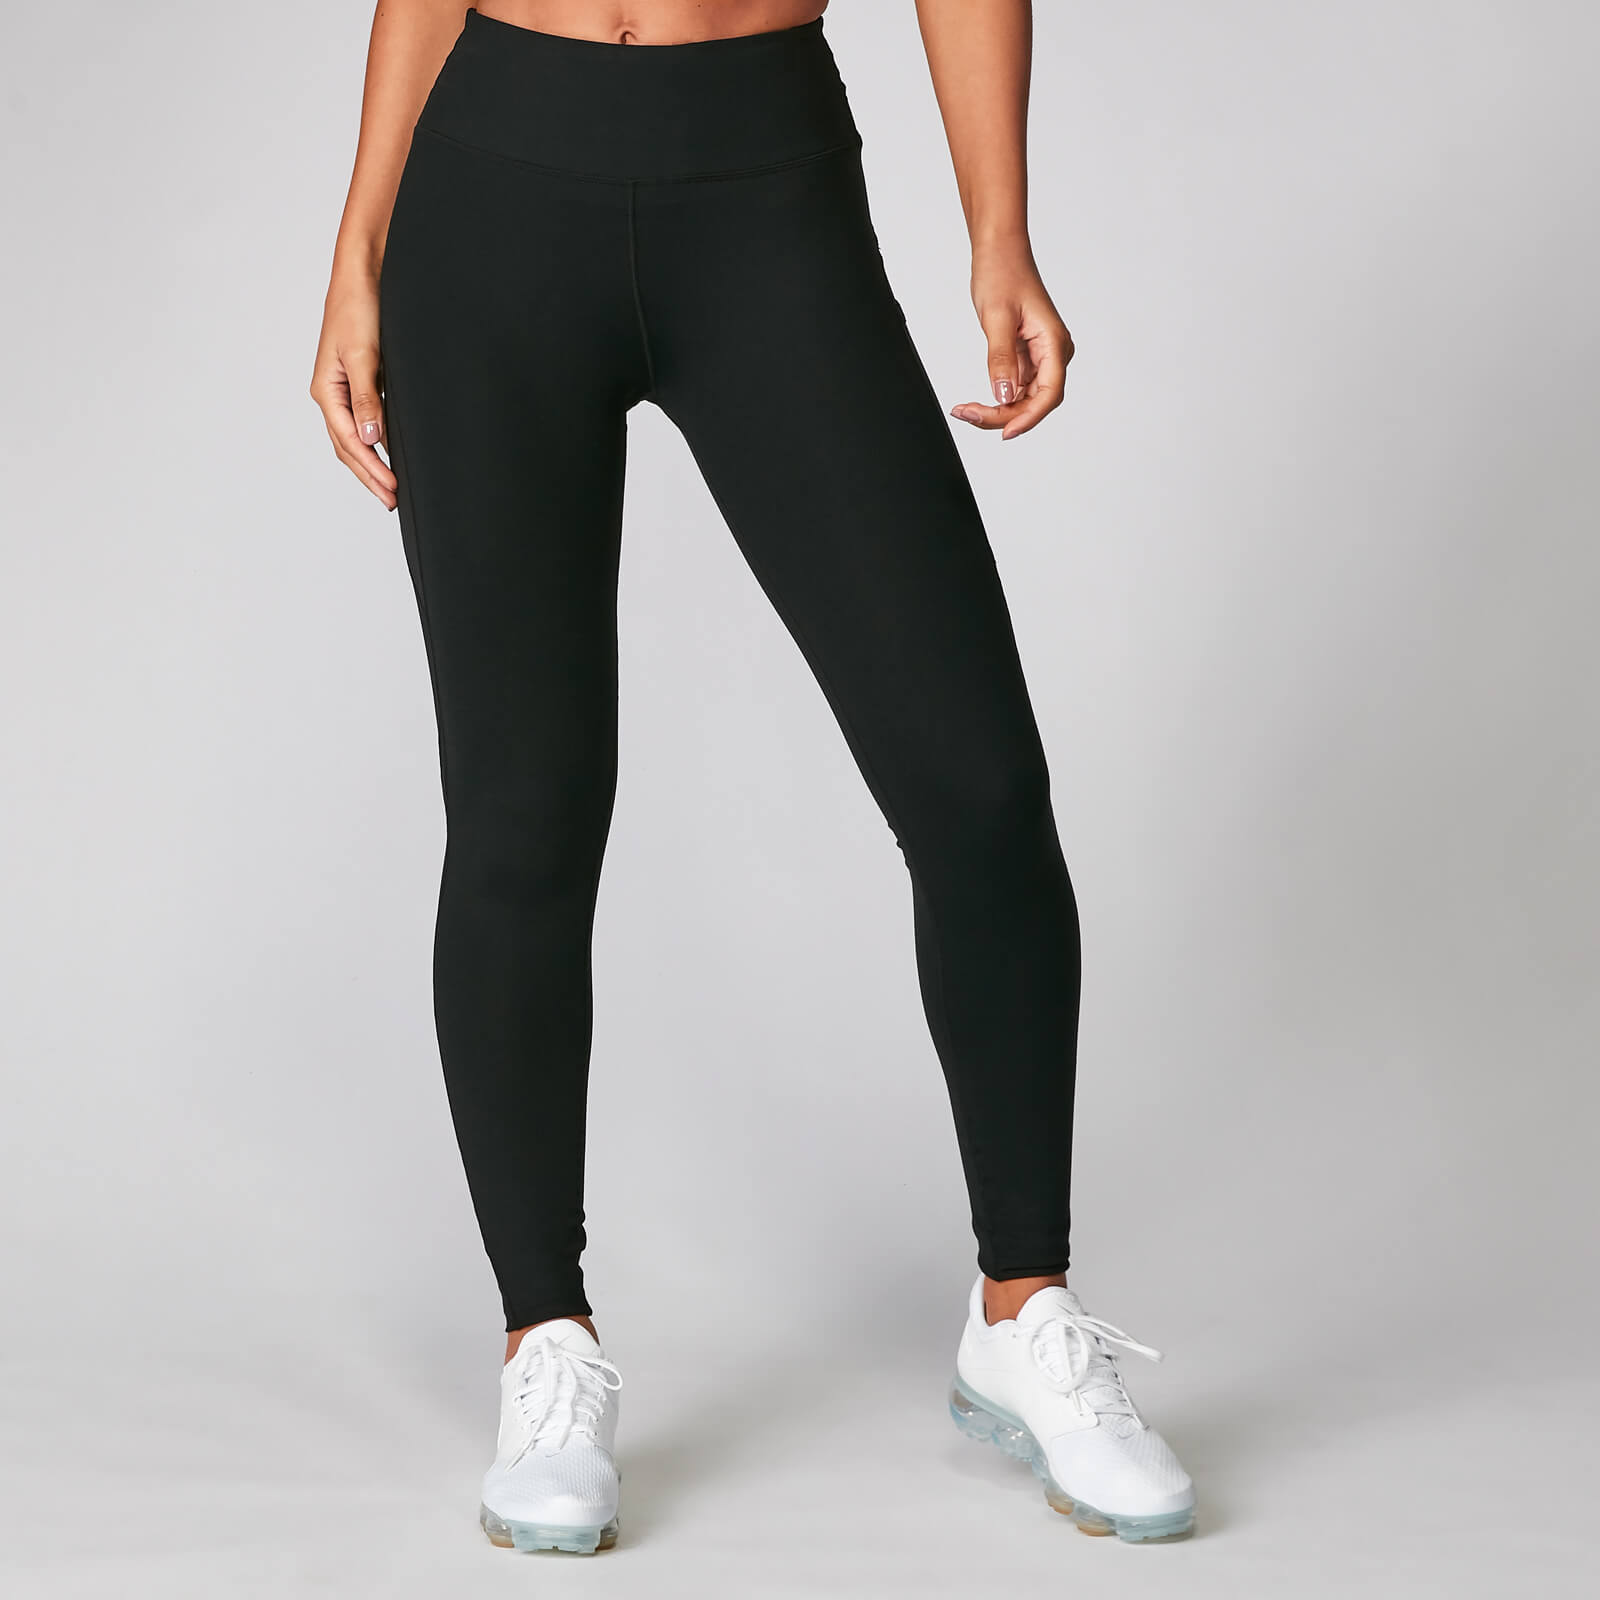 9f9c331e1d6bf6 Buy Women's Power Mesh Leggings | Myprotein.com